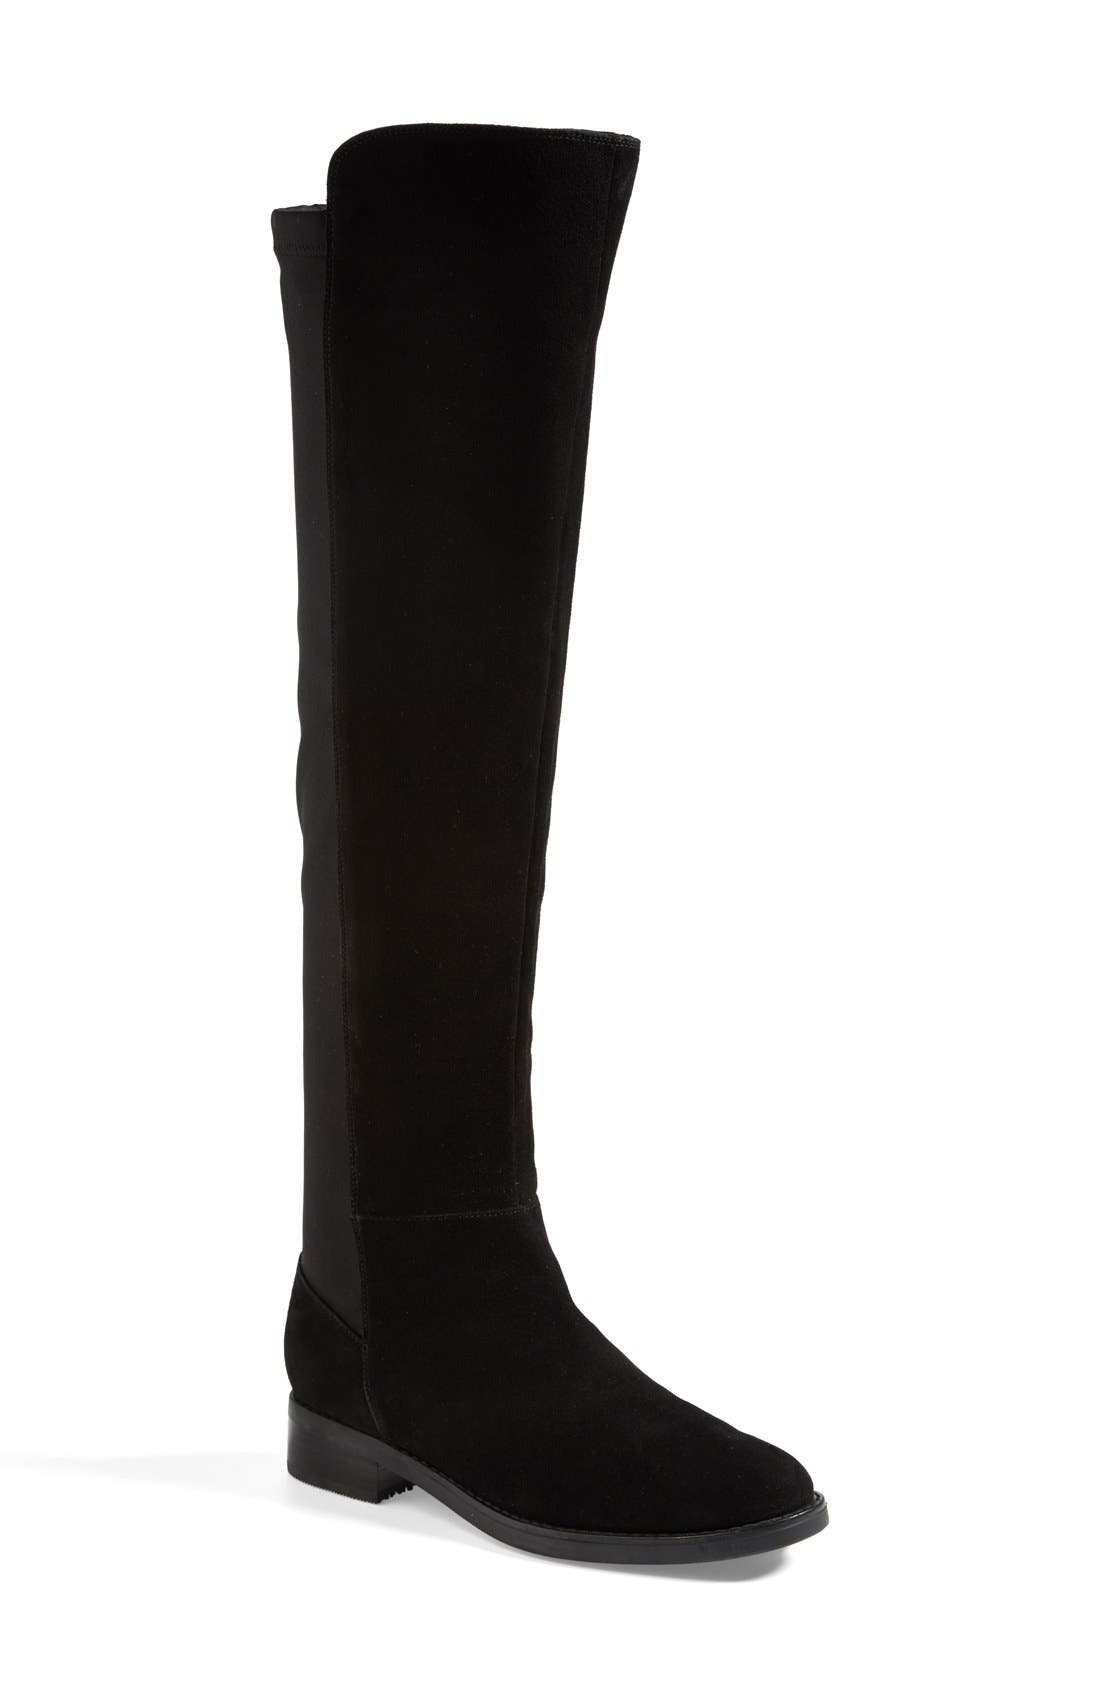 Main Image - Blondo 'Eden' Over the Knee Waterproof Boot (Women)